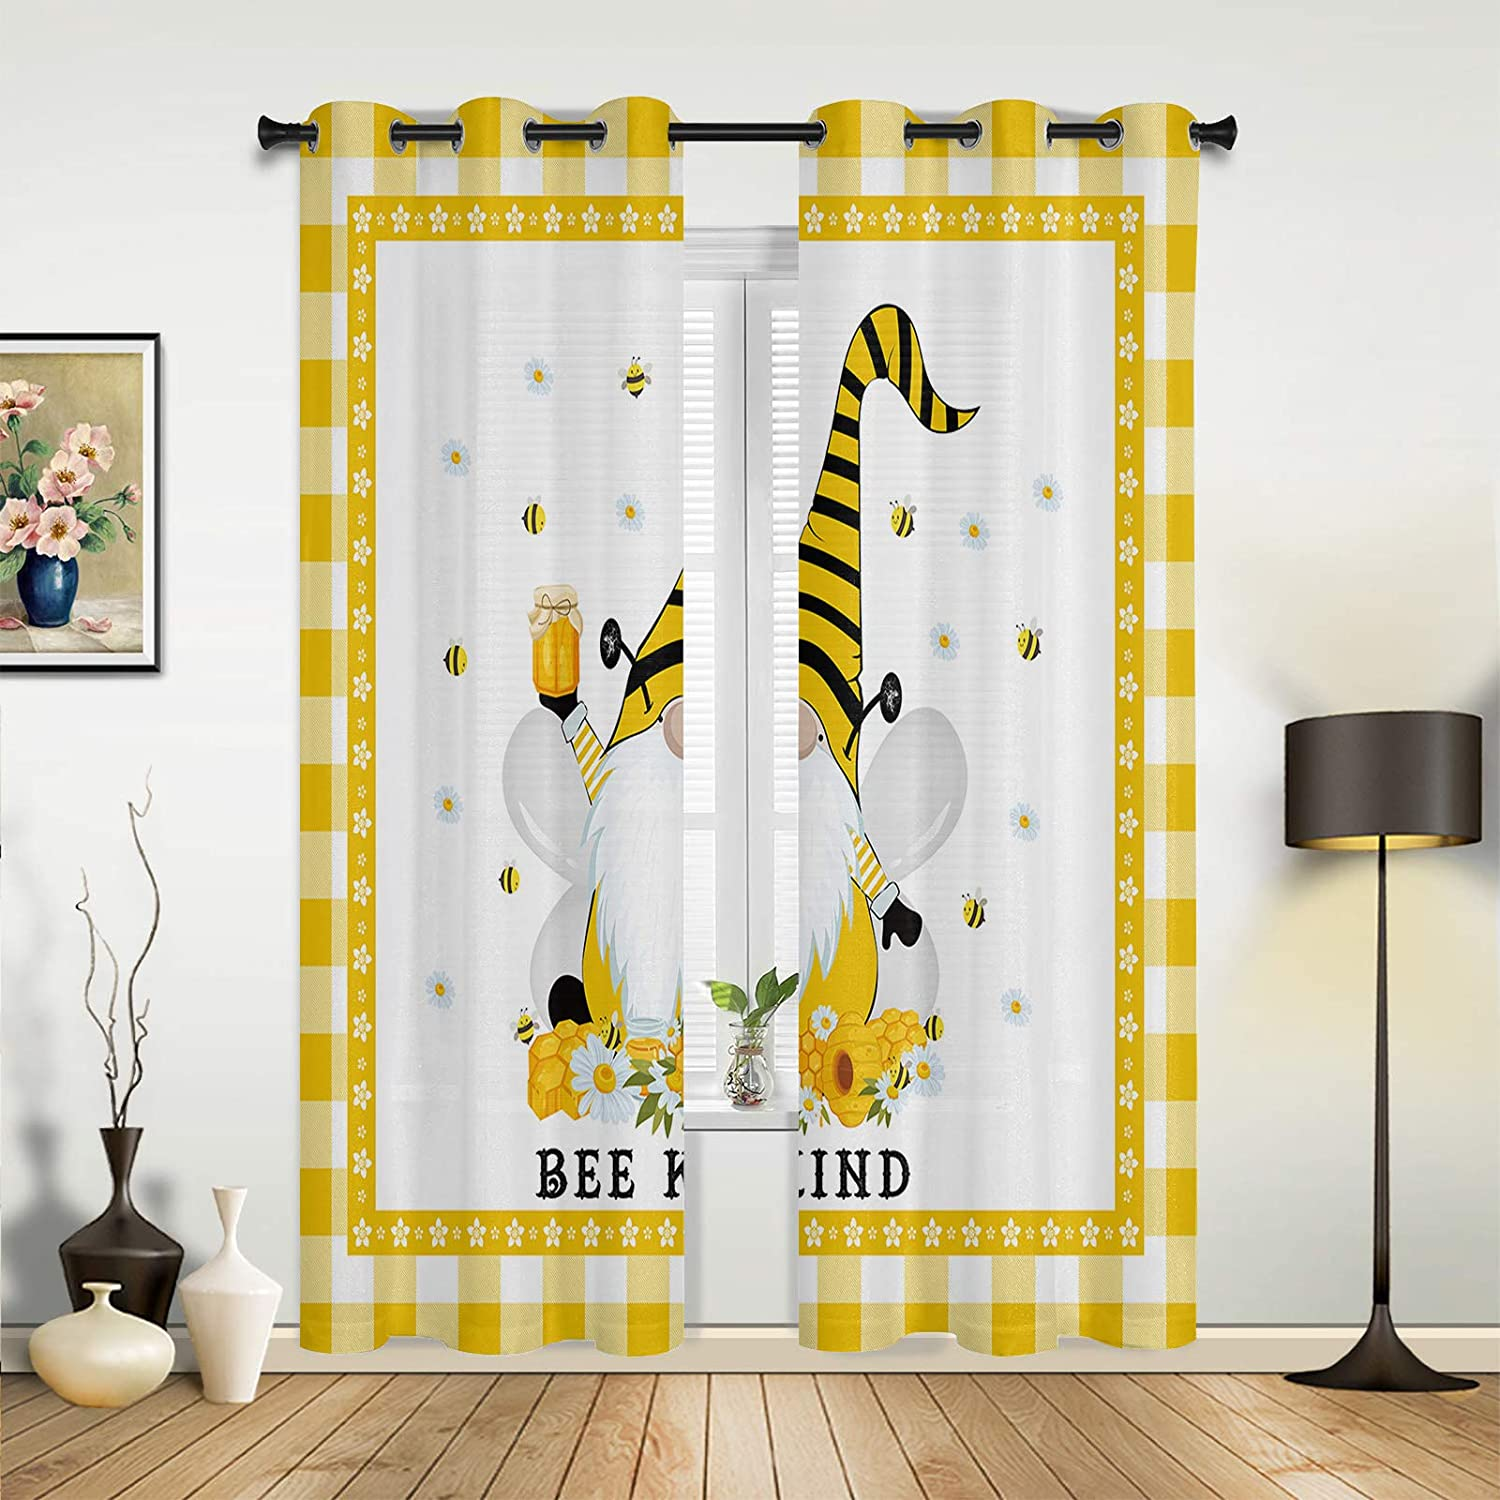 Window Sheer Curtains for Bedroom Room Weekly update Living shopping Pastoral American